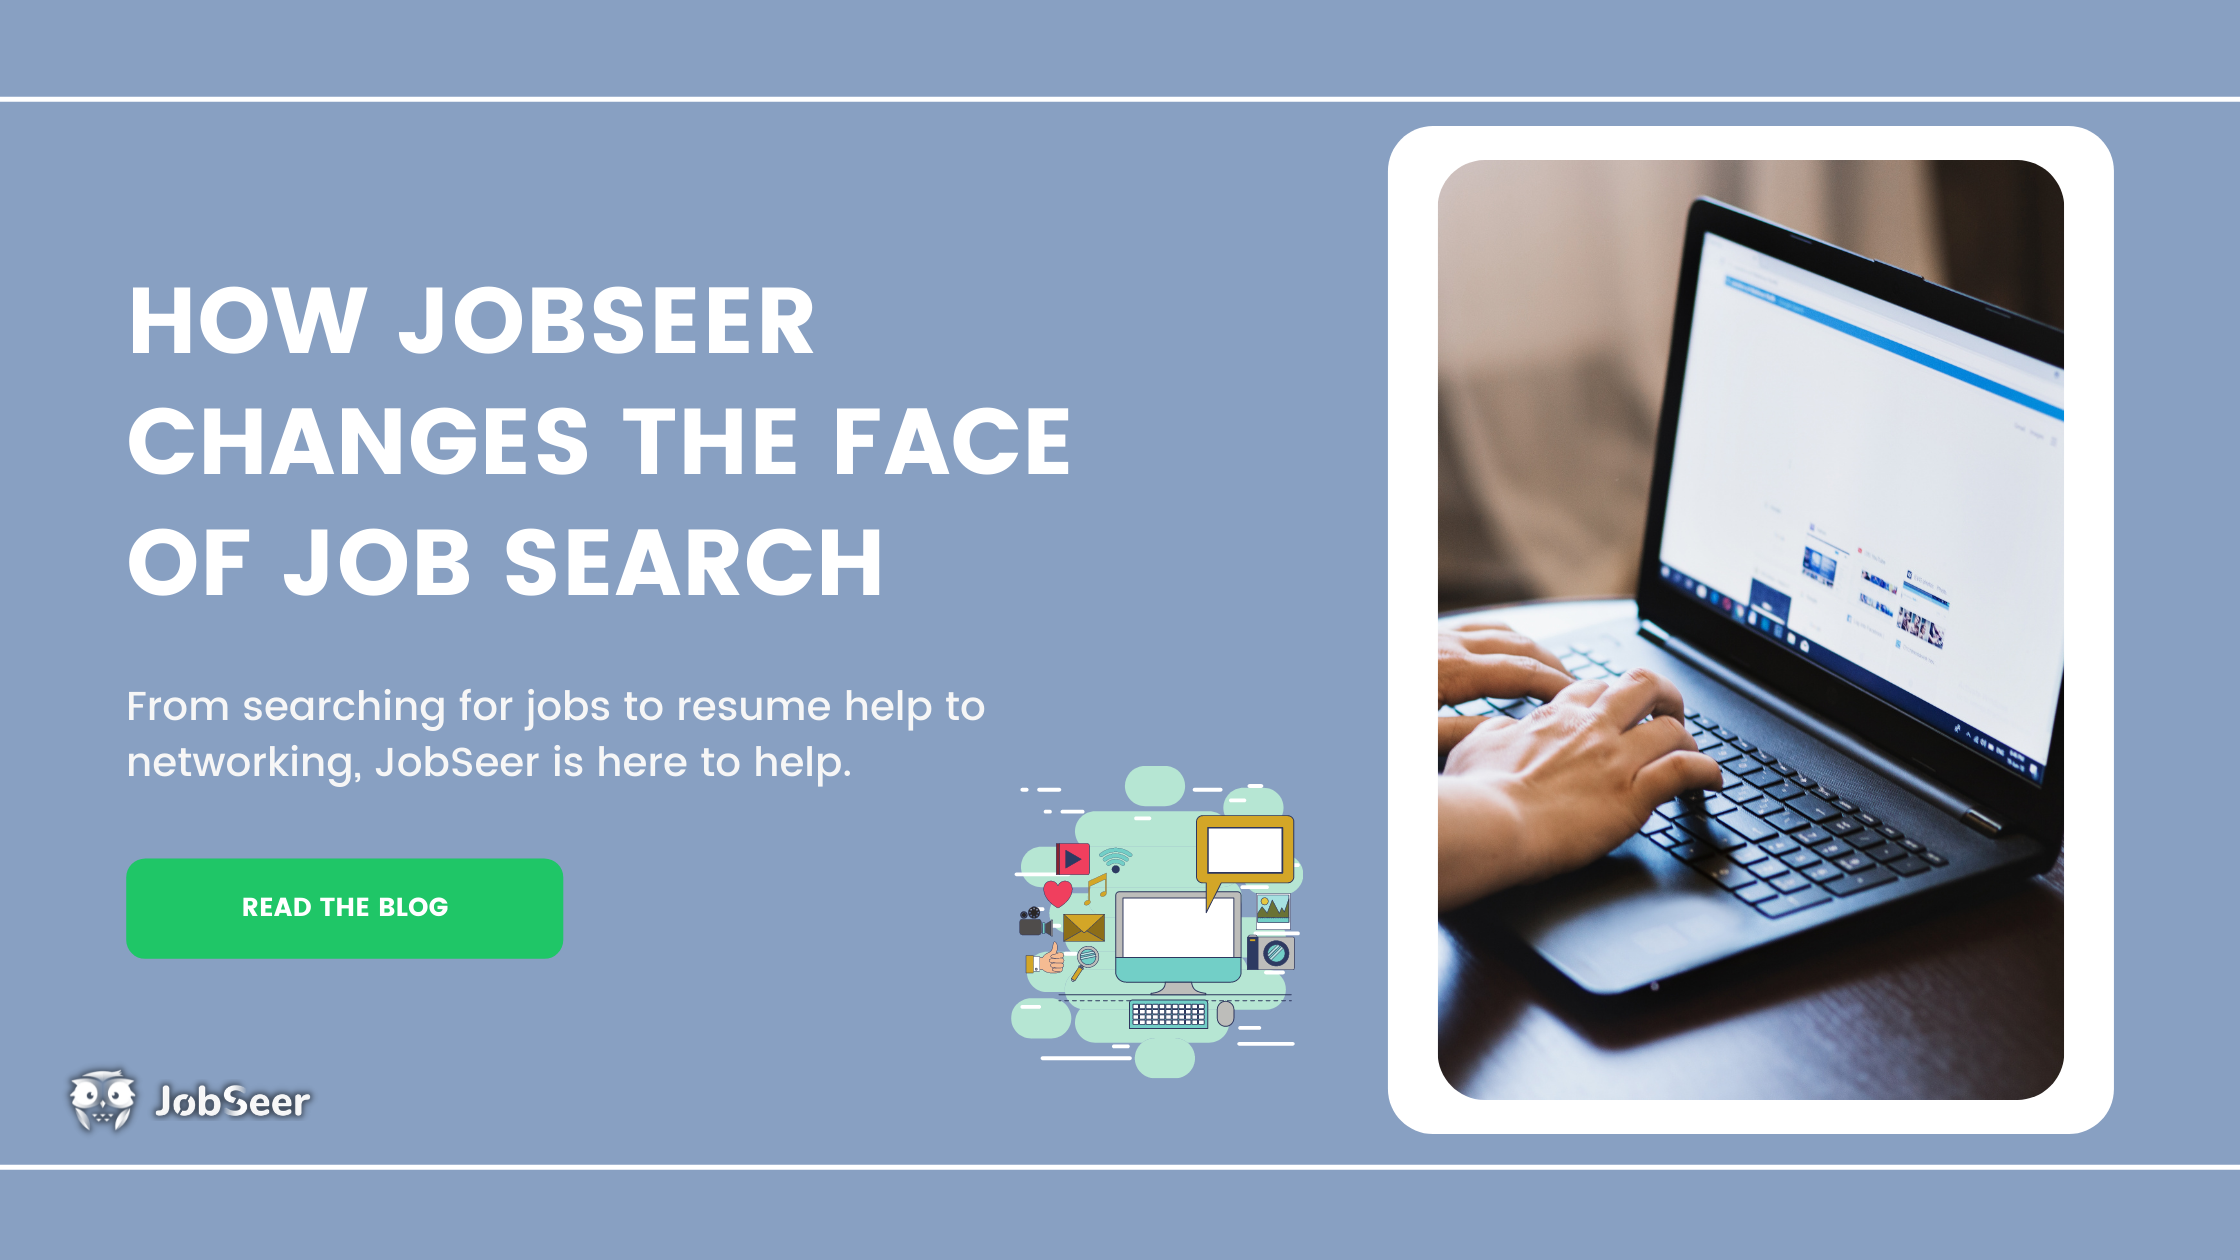 How JobSeer Changes The Face Of Job Search